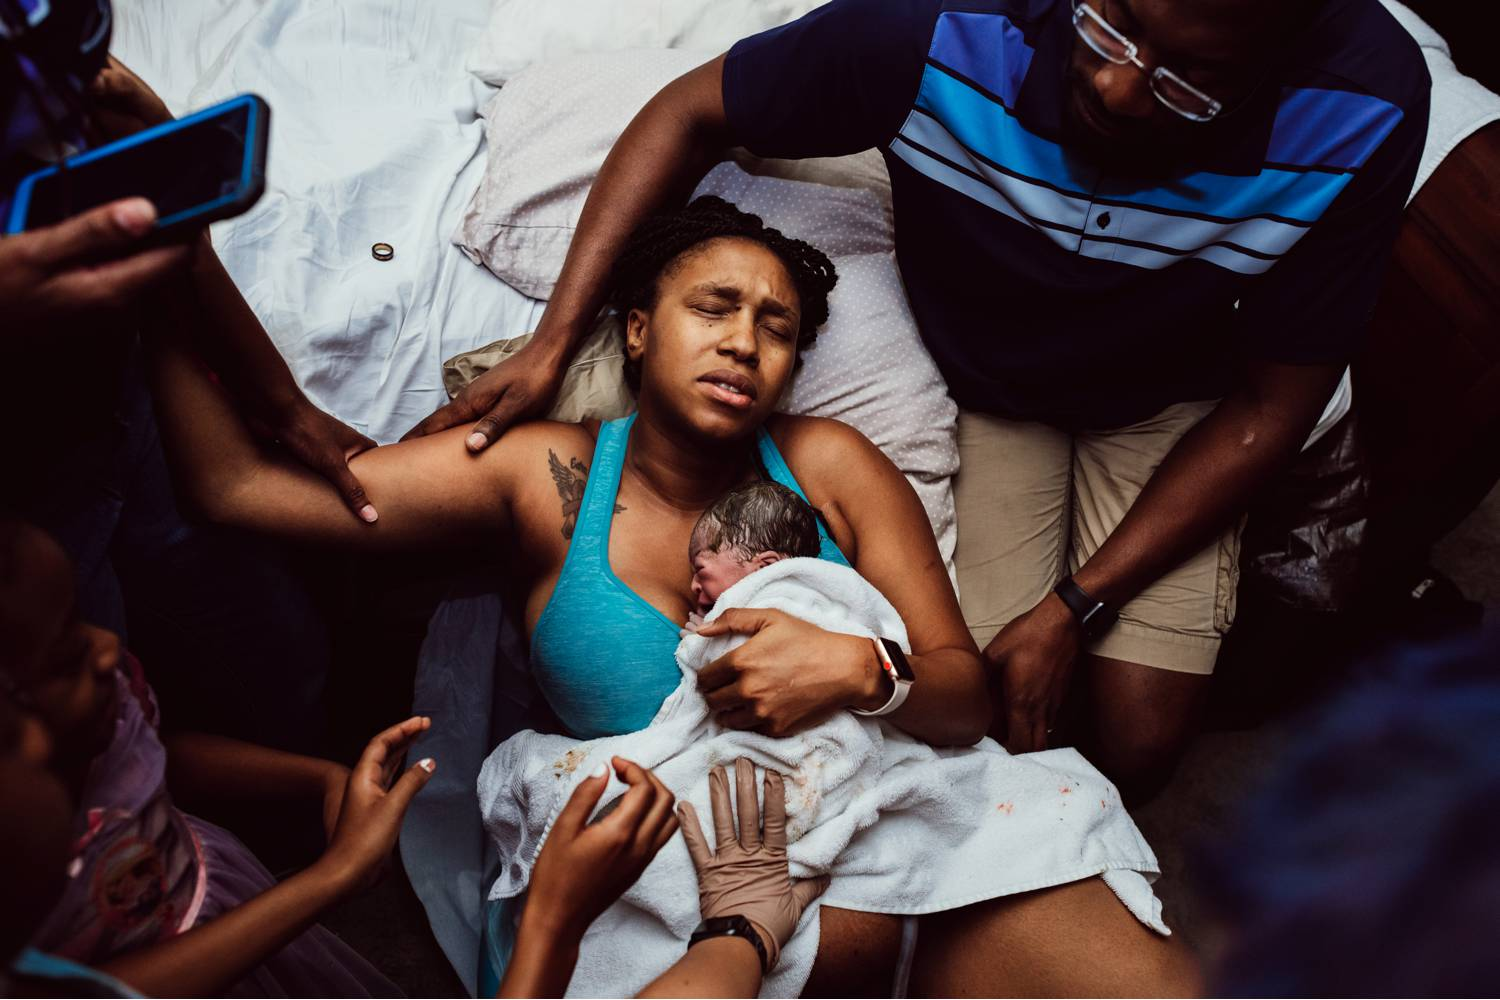 A mother embraces her newborn against her chest after just giving birth. She is surrounded by the supportive arms of her friends and family.